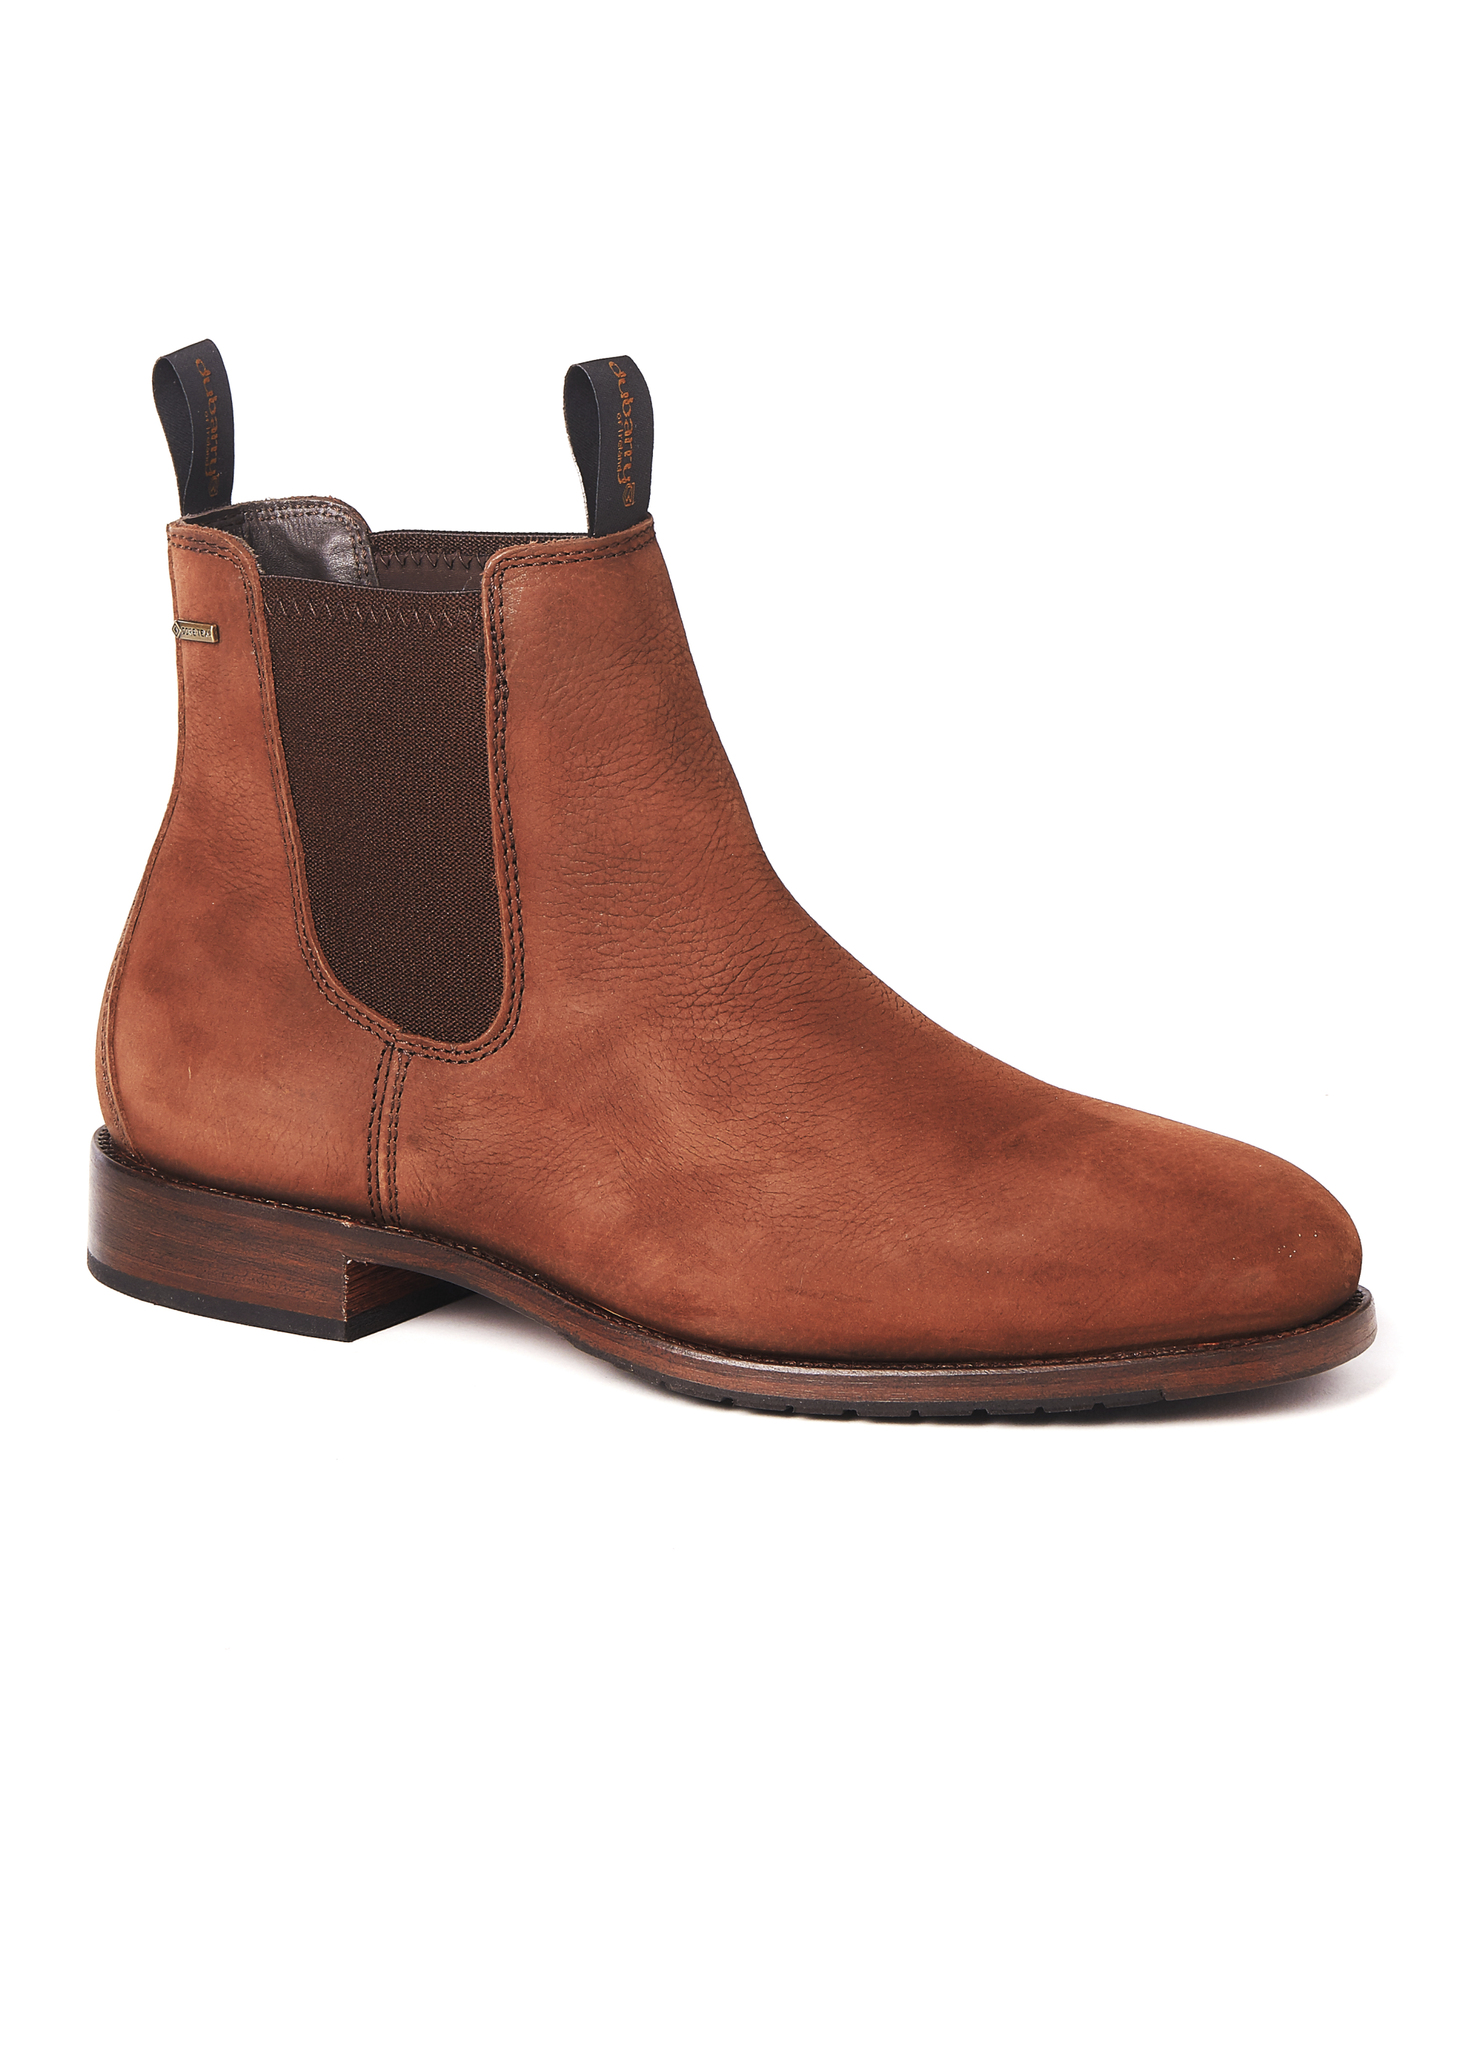 Dubarry Kerry Chelsea Boot Walnut